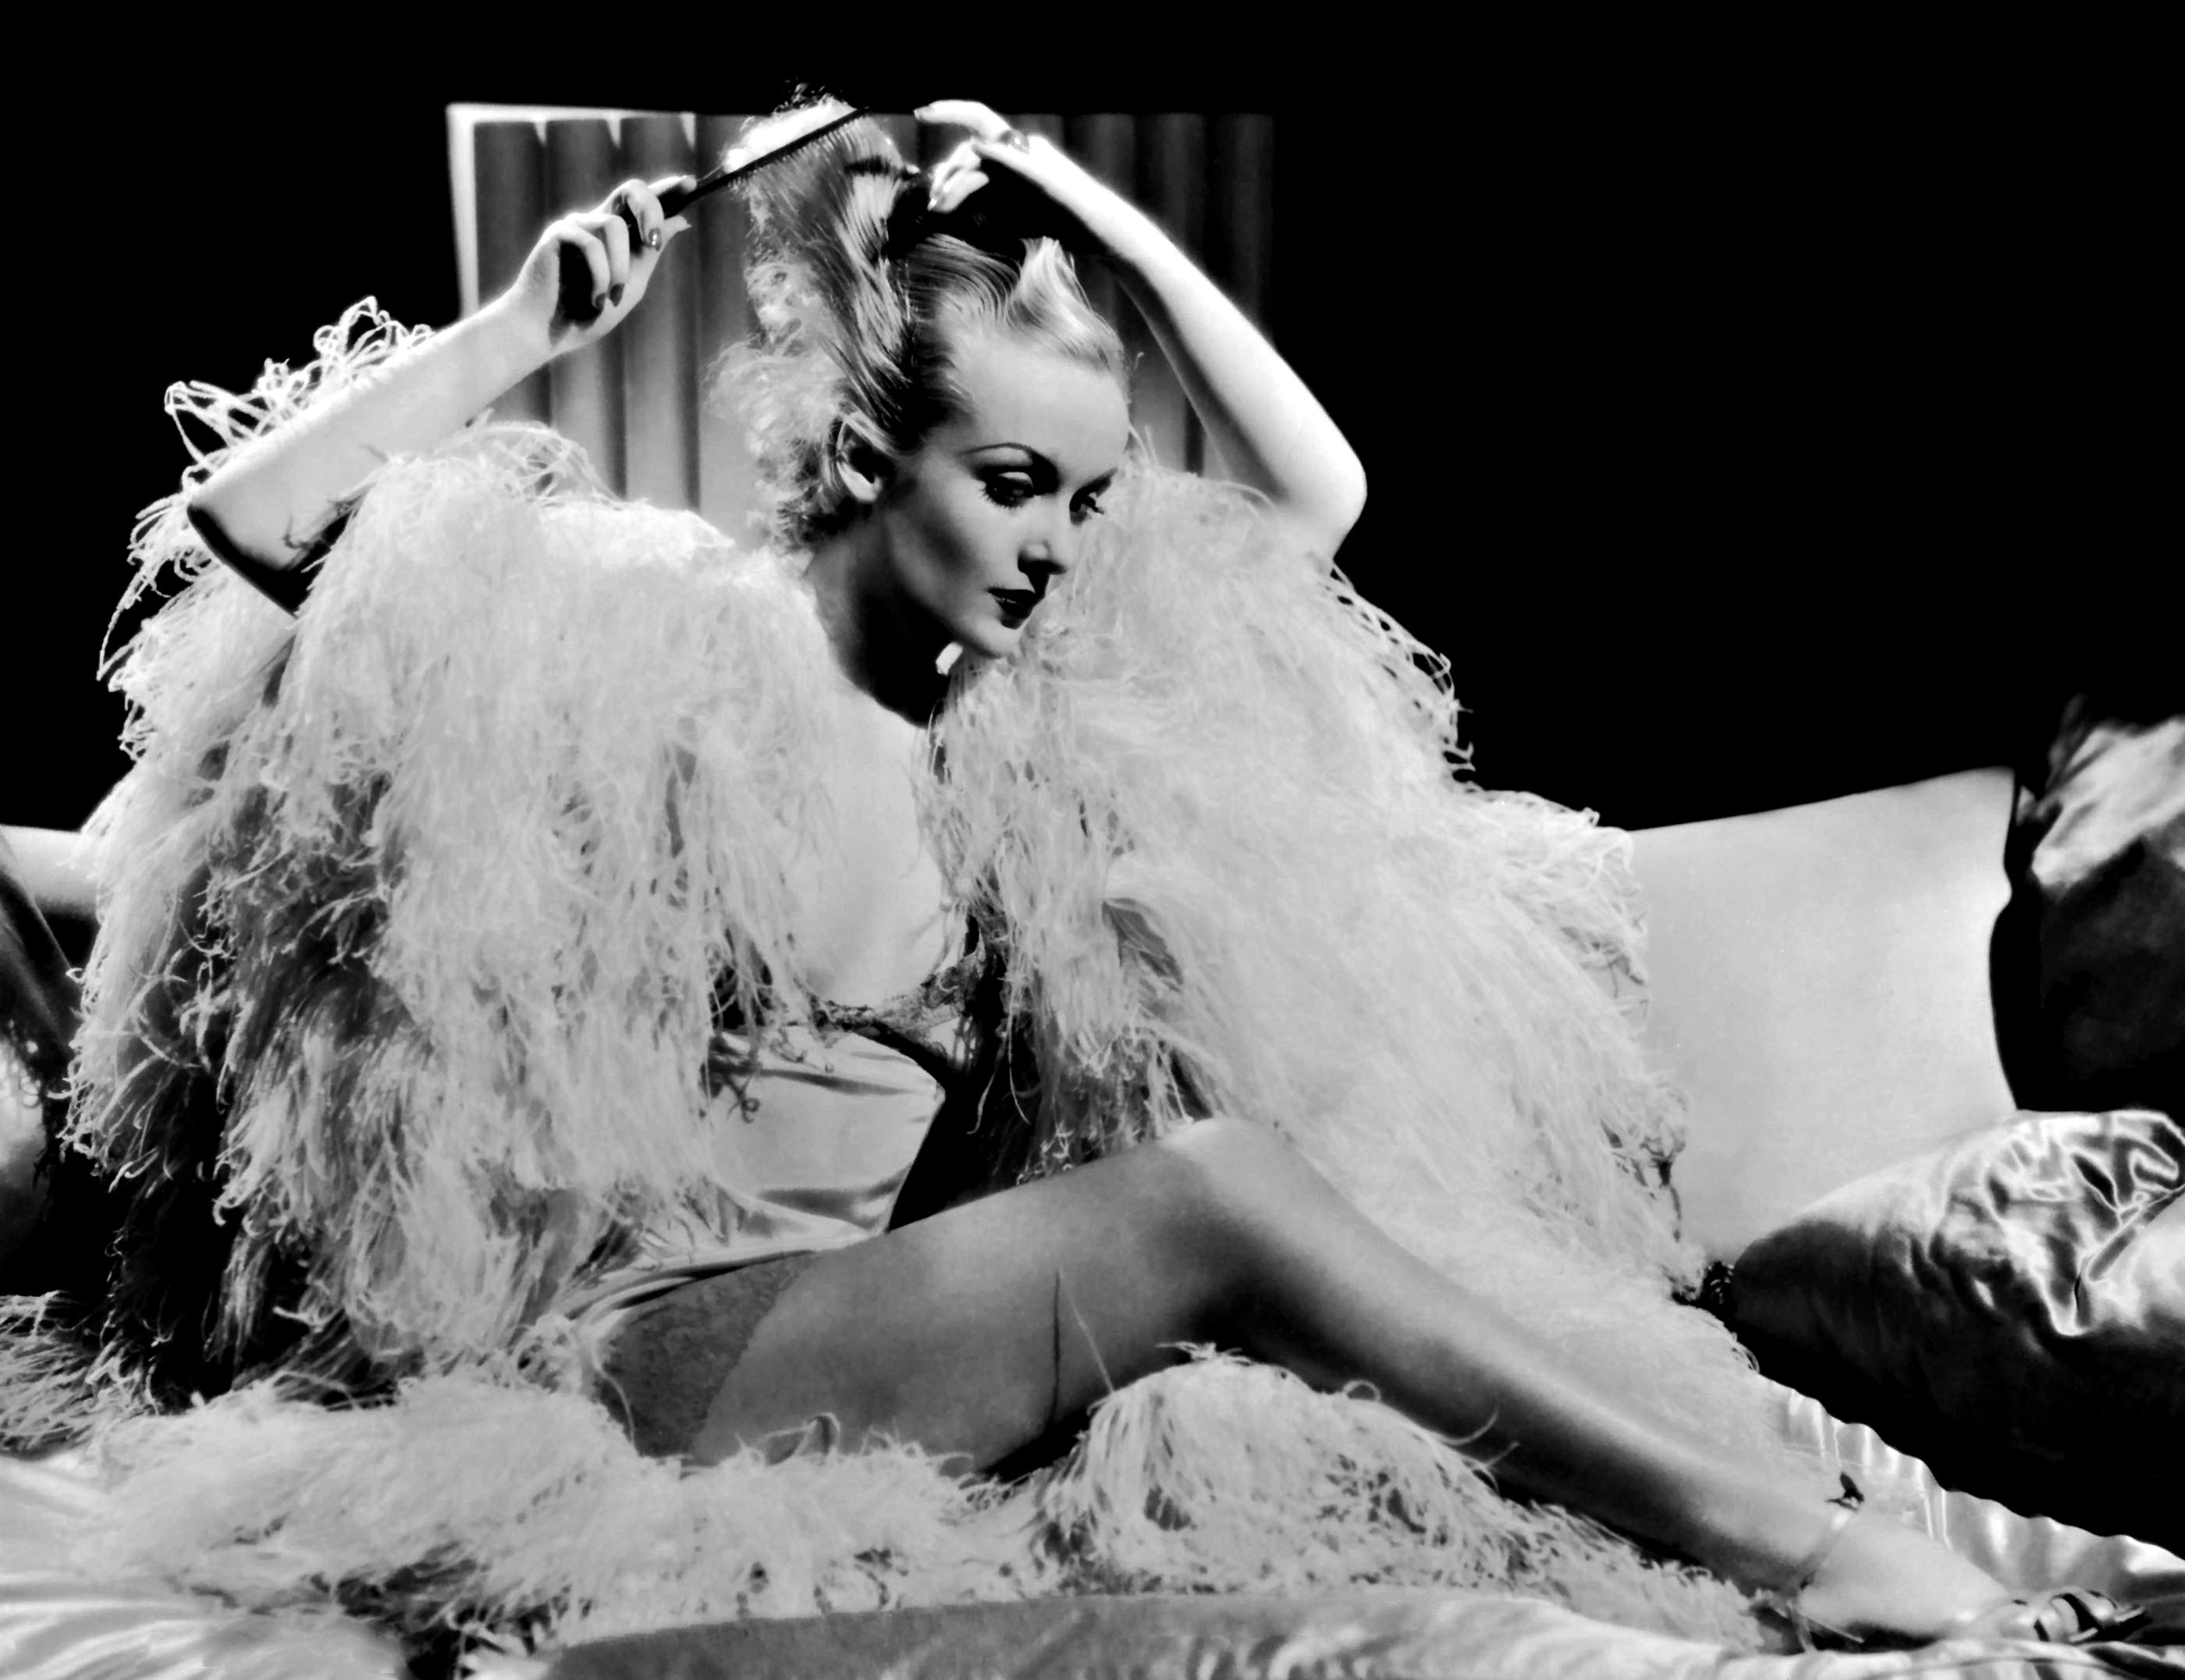 Actress, Carole Lombard (October 6, 1908 – January 16, 1942) - Birth name: Jane Alice Peters - Birth place: Fort Wayne, Indiana - Place of death: Mount Potosi, Nevada (plane crash) - Wife of actor, Clark Gable